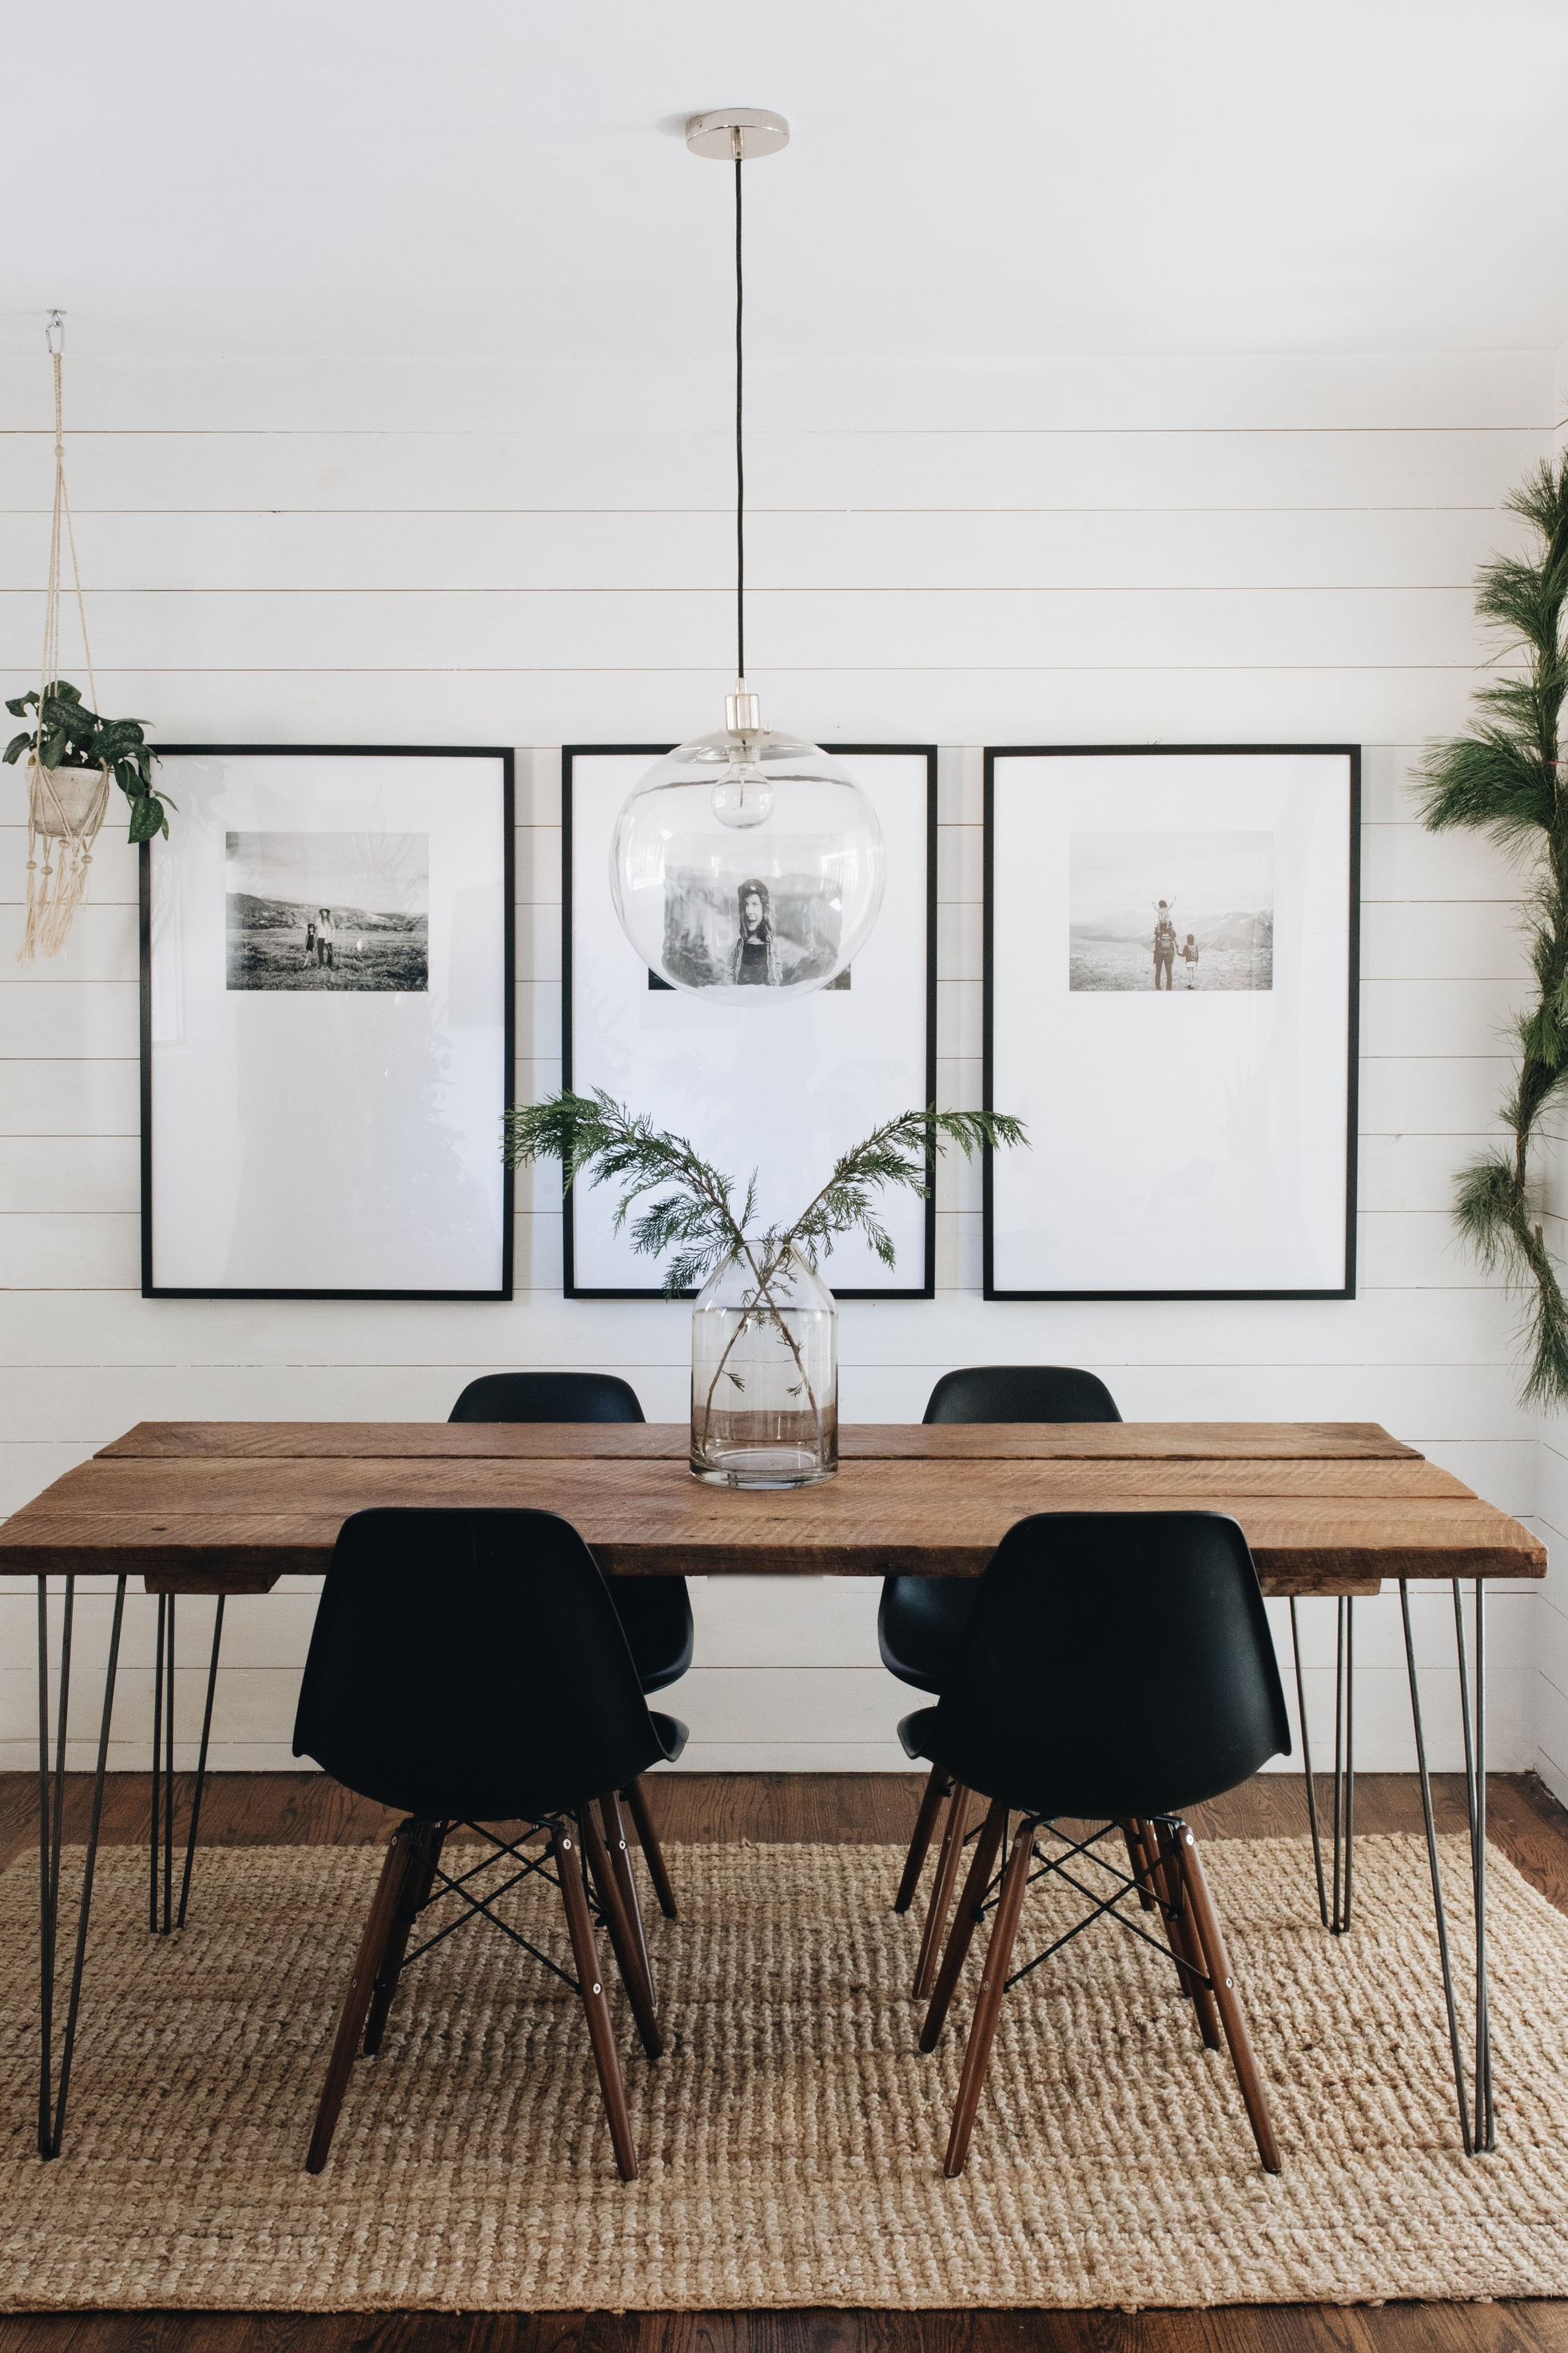 Three black and white photos in large mats and black frames for minimalist dining room decor - how to display art in your house - Leah E. Moss Designs